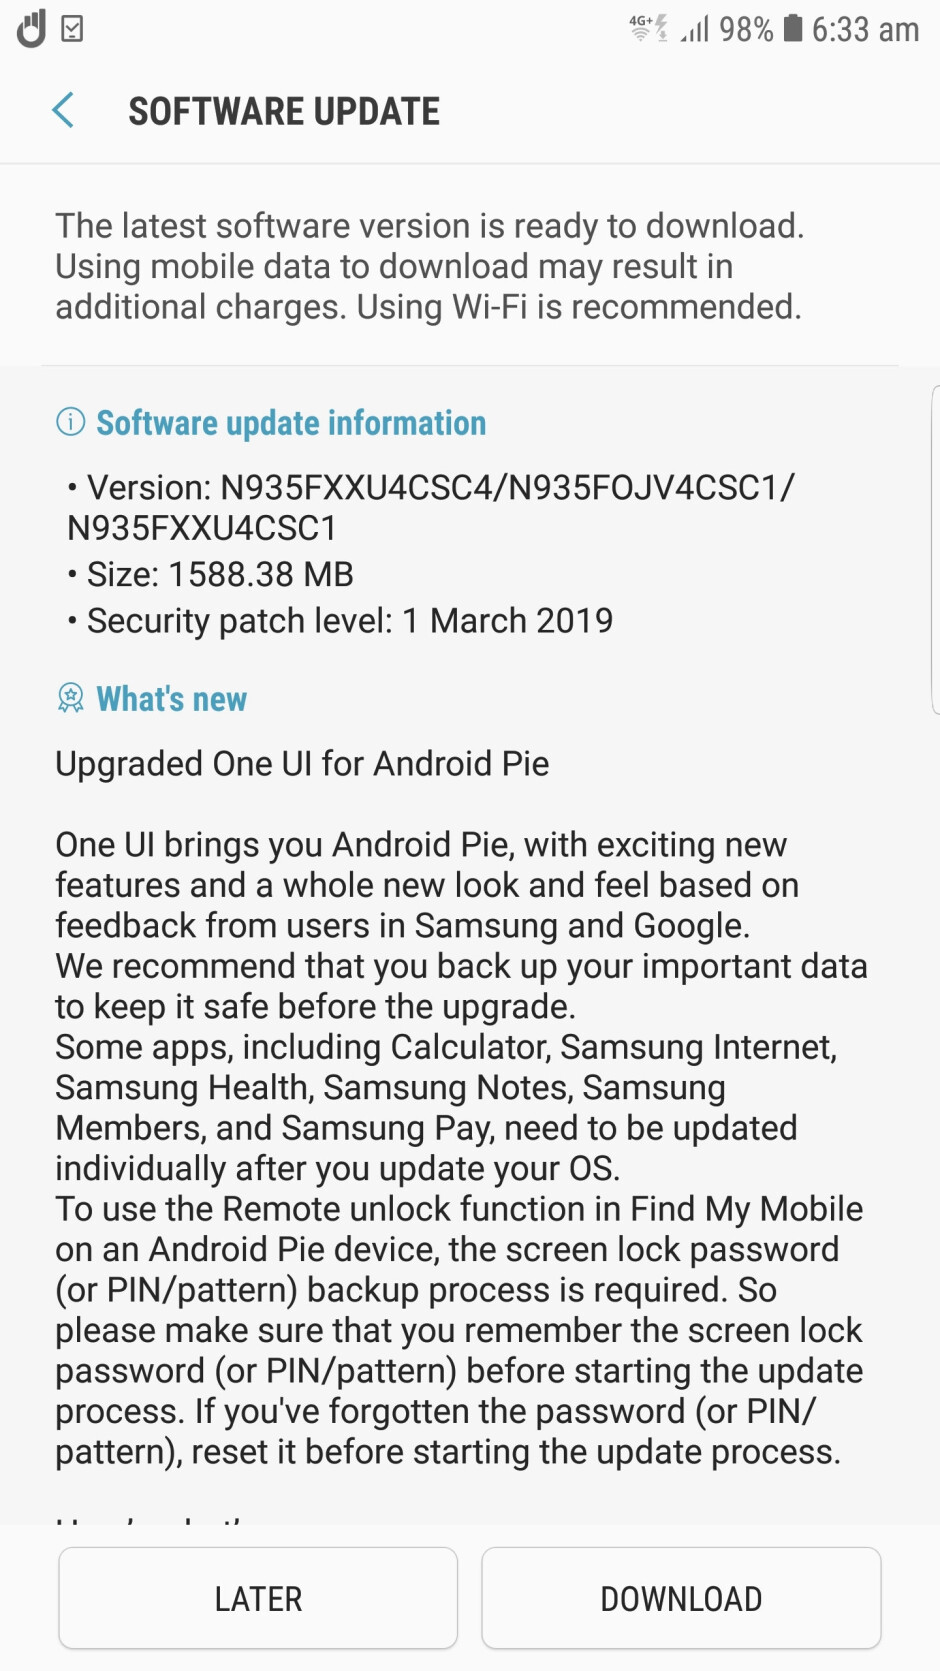 The non-exploding Samsung Galaxy Note 7 is getting Android 9.0 Pie